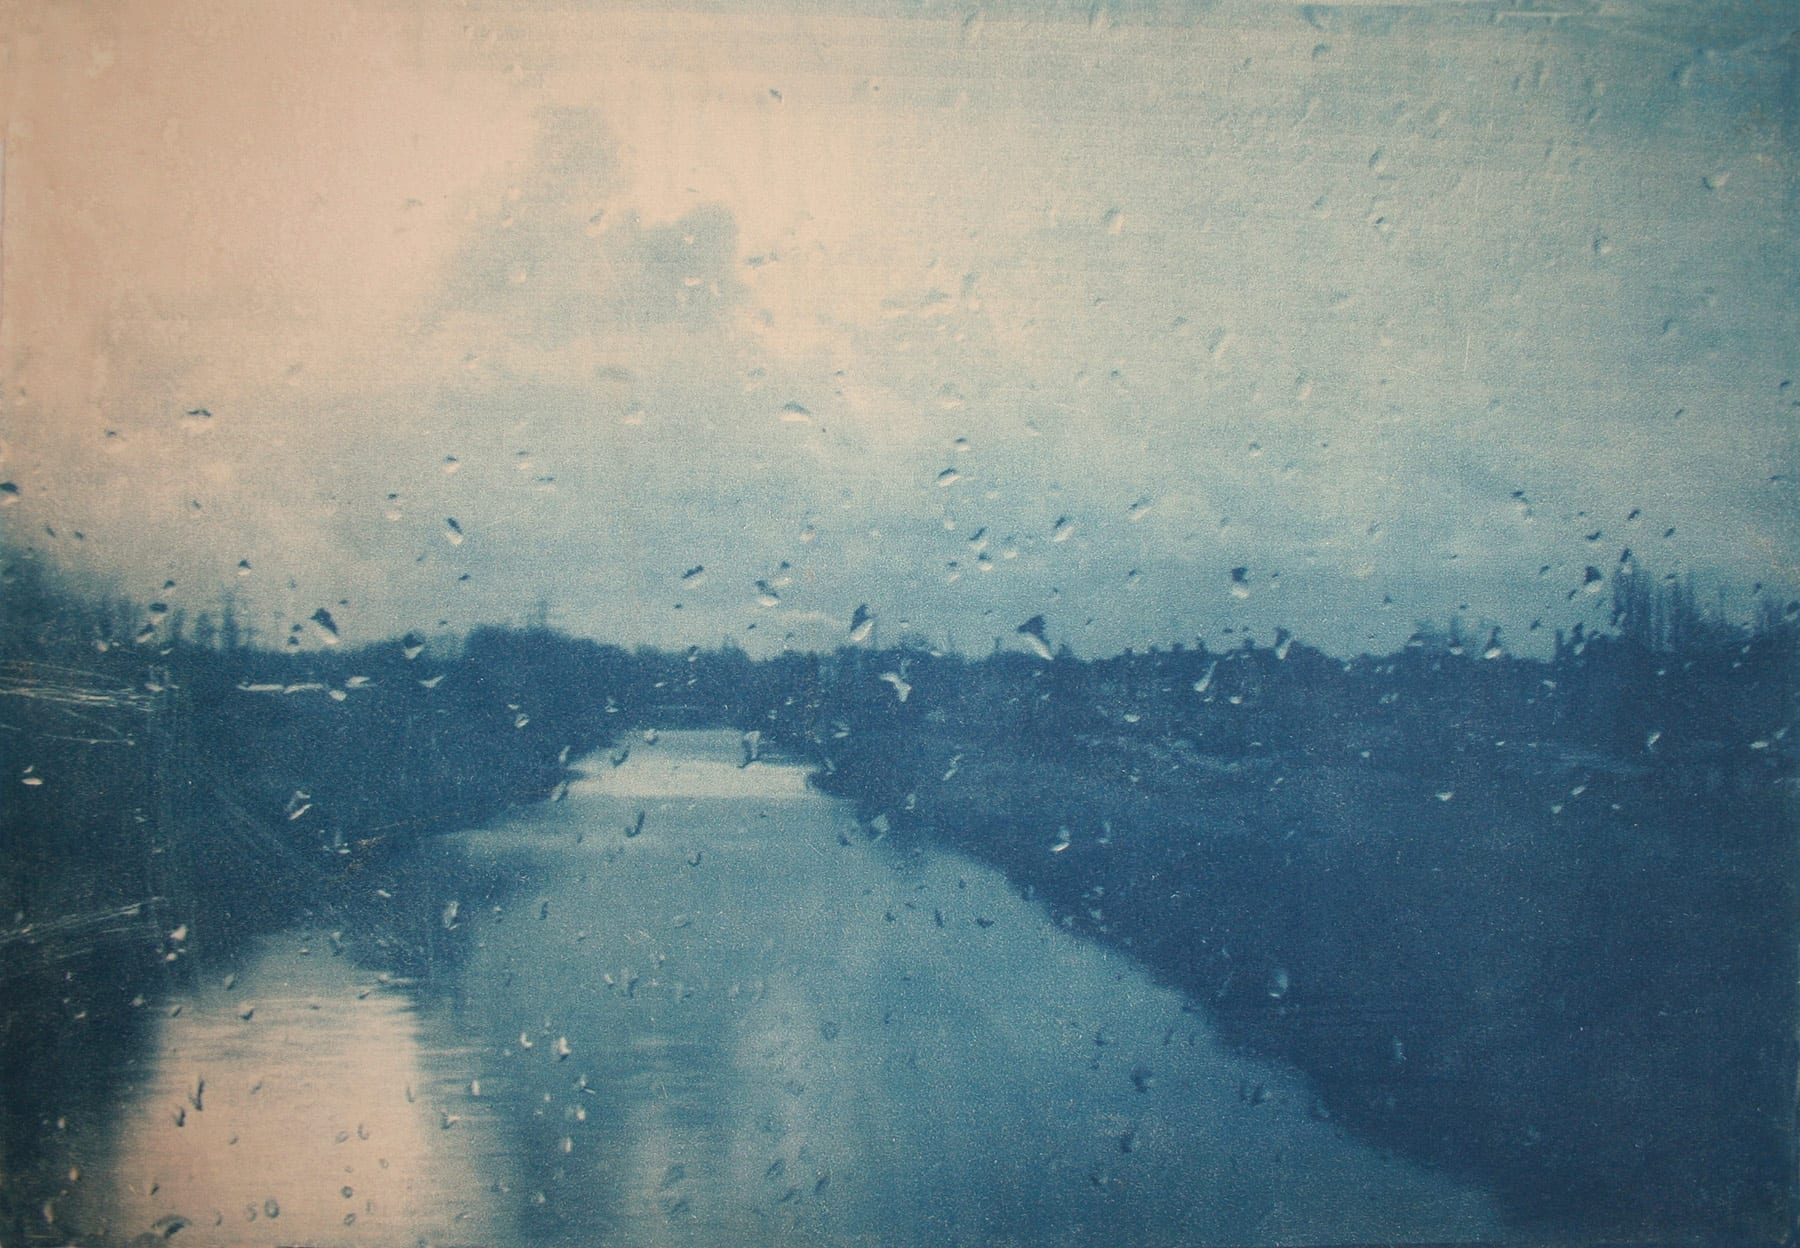 Journey-11-Katja Liebmann-HackelBury Fine Art-cyanotype photograph of river through rainy window